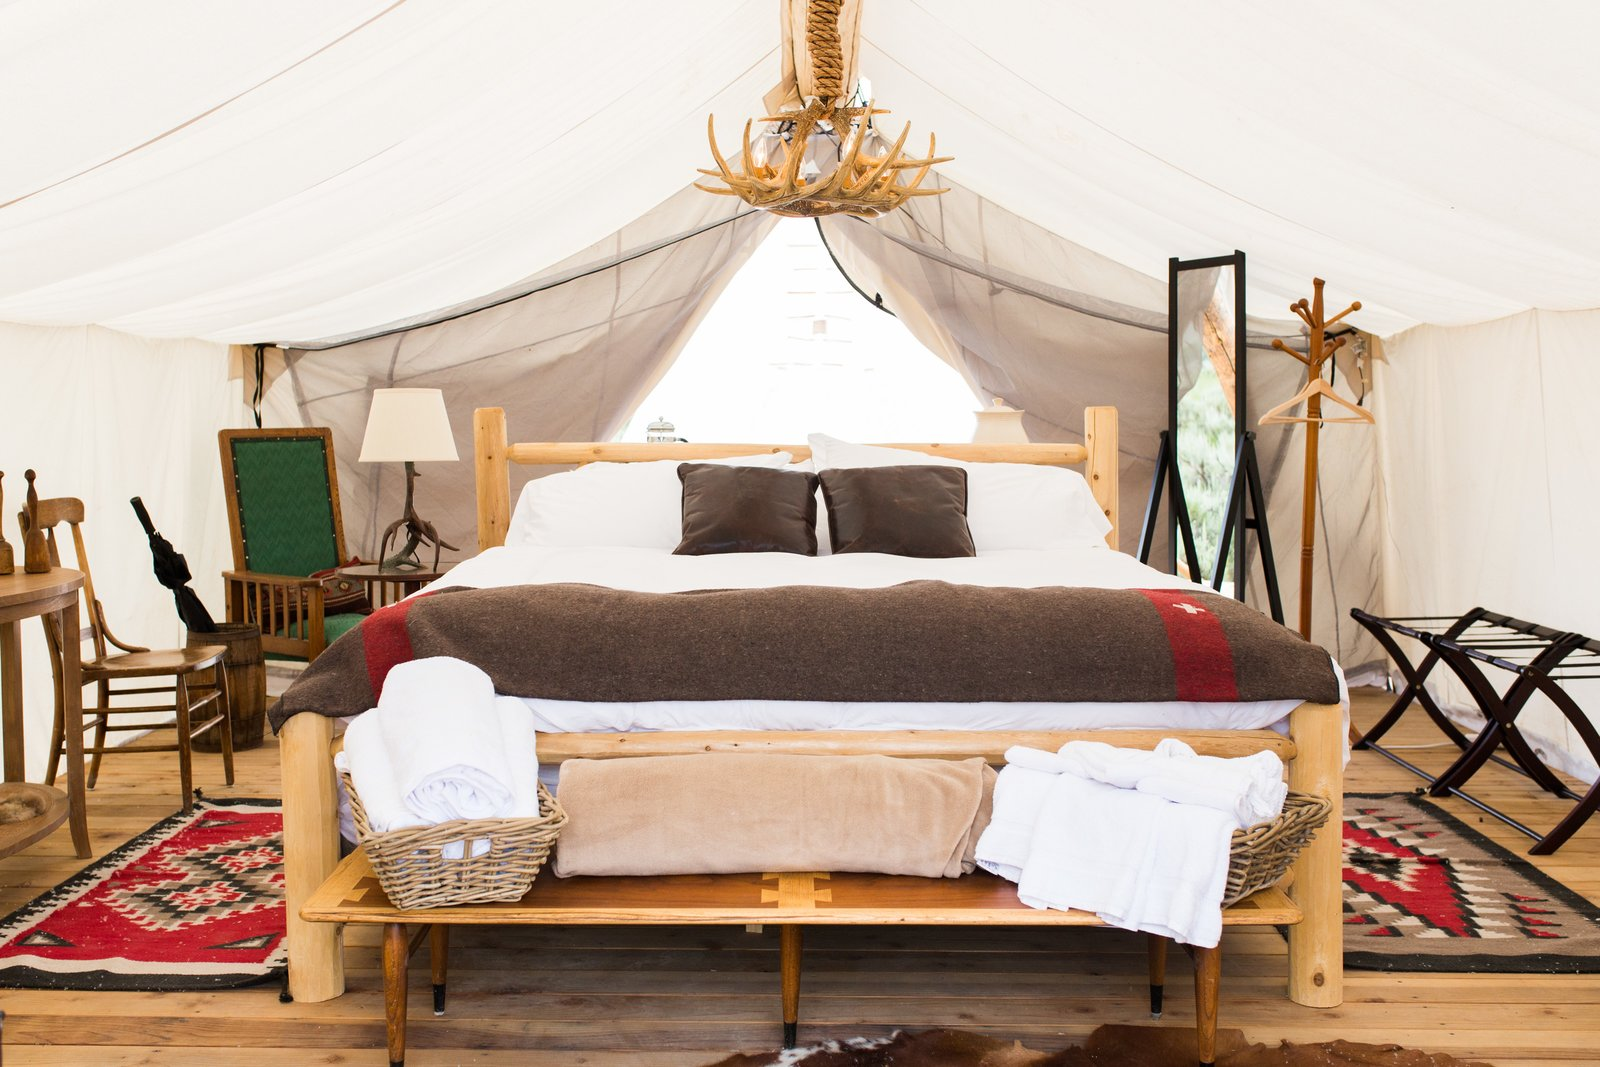 At the Vail location, designer Cassie Novick sourced western, ranch-inspired furnishings from local markets, estate sales, and flea markets. In the tents, you'll find Native American-inspired details, special books, and maybe even some vintage board games. Get the Modern Camping Experience You Crave at One of These New Secluded Retreats - Photo 4 of 12